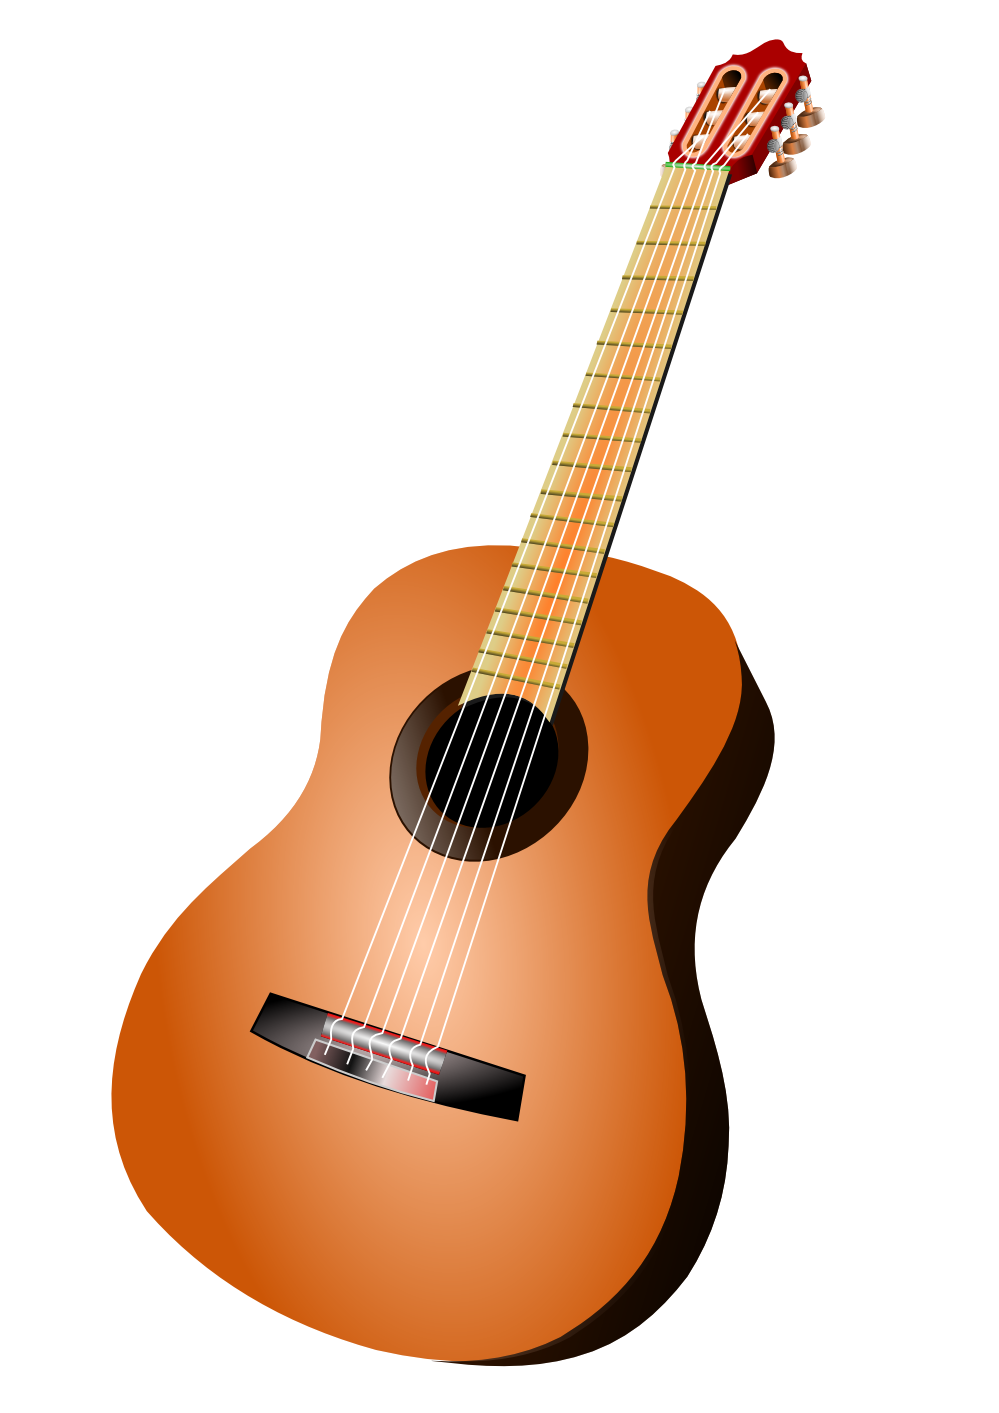 Pin by hopeless on. Clipart guitar guitar lesson